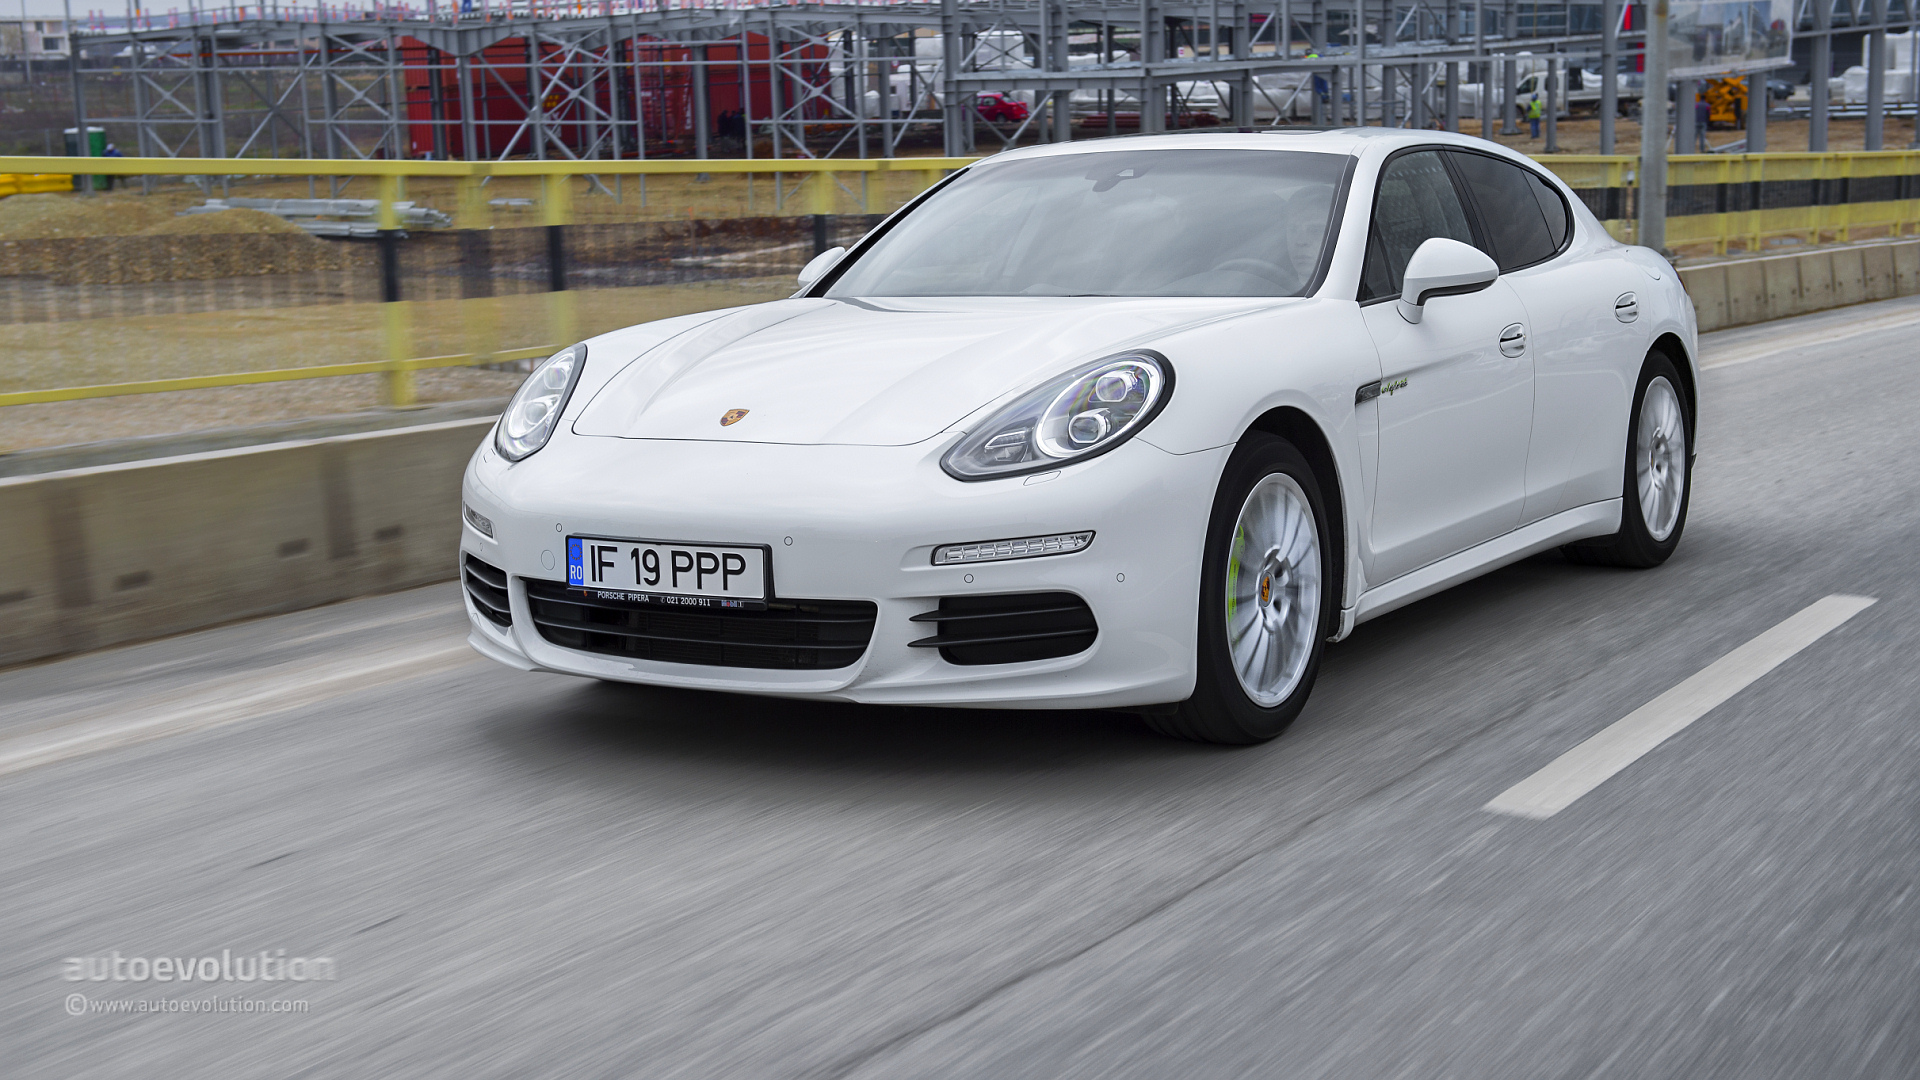 2015 porsche panamera s e hybrid tested the top details autoevolution. Black Bedroom Furniture Sets. Home Design Ideas